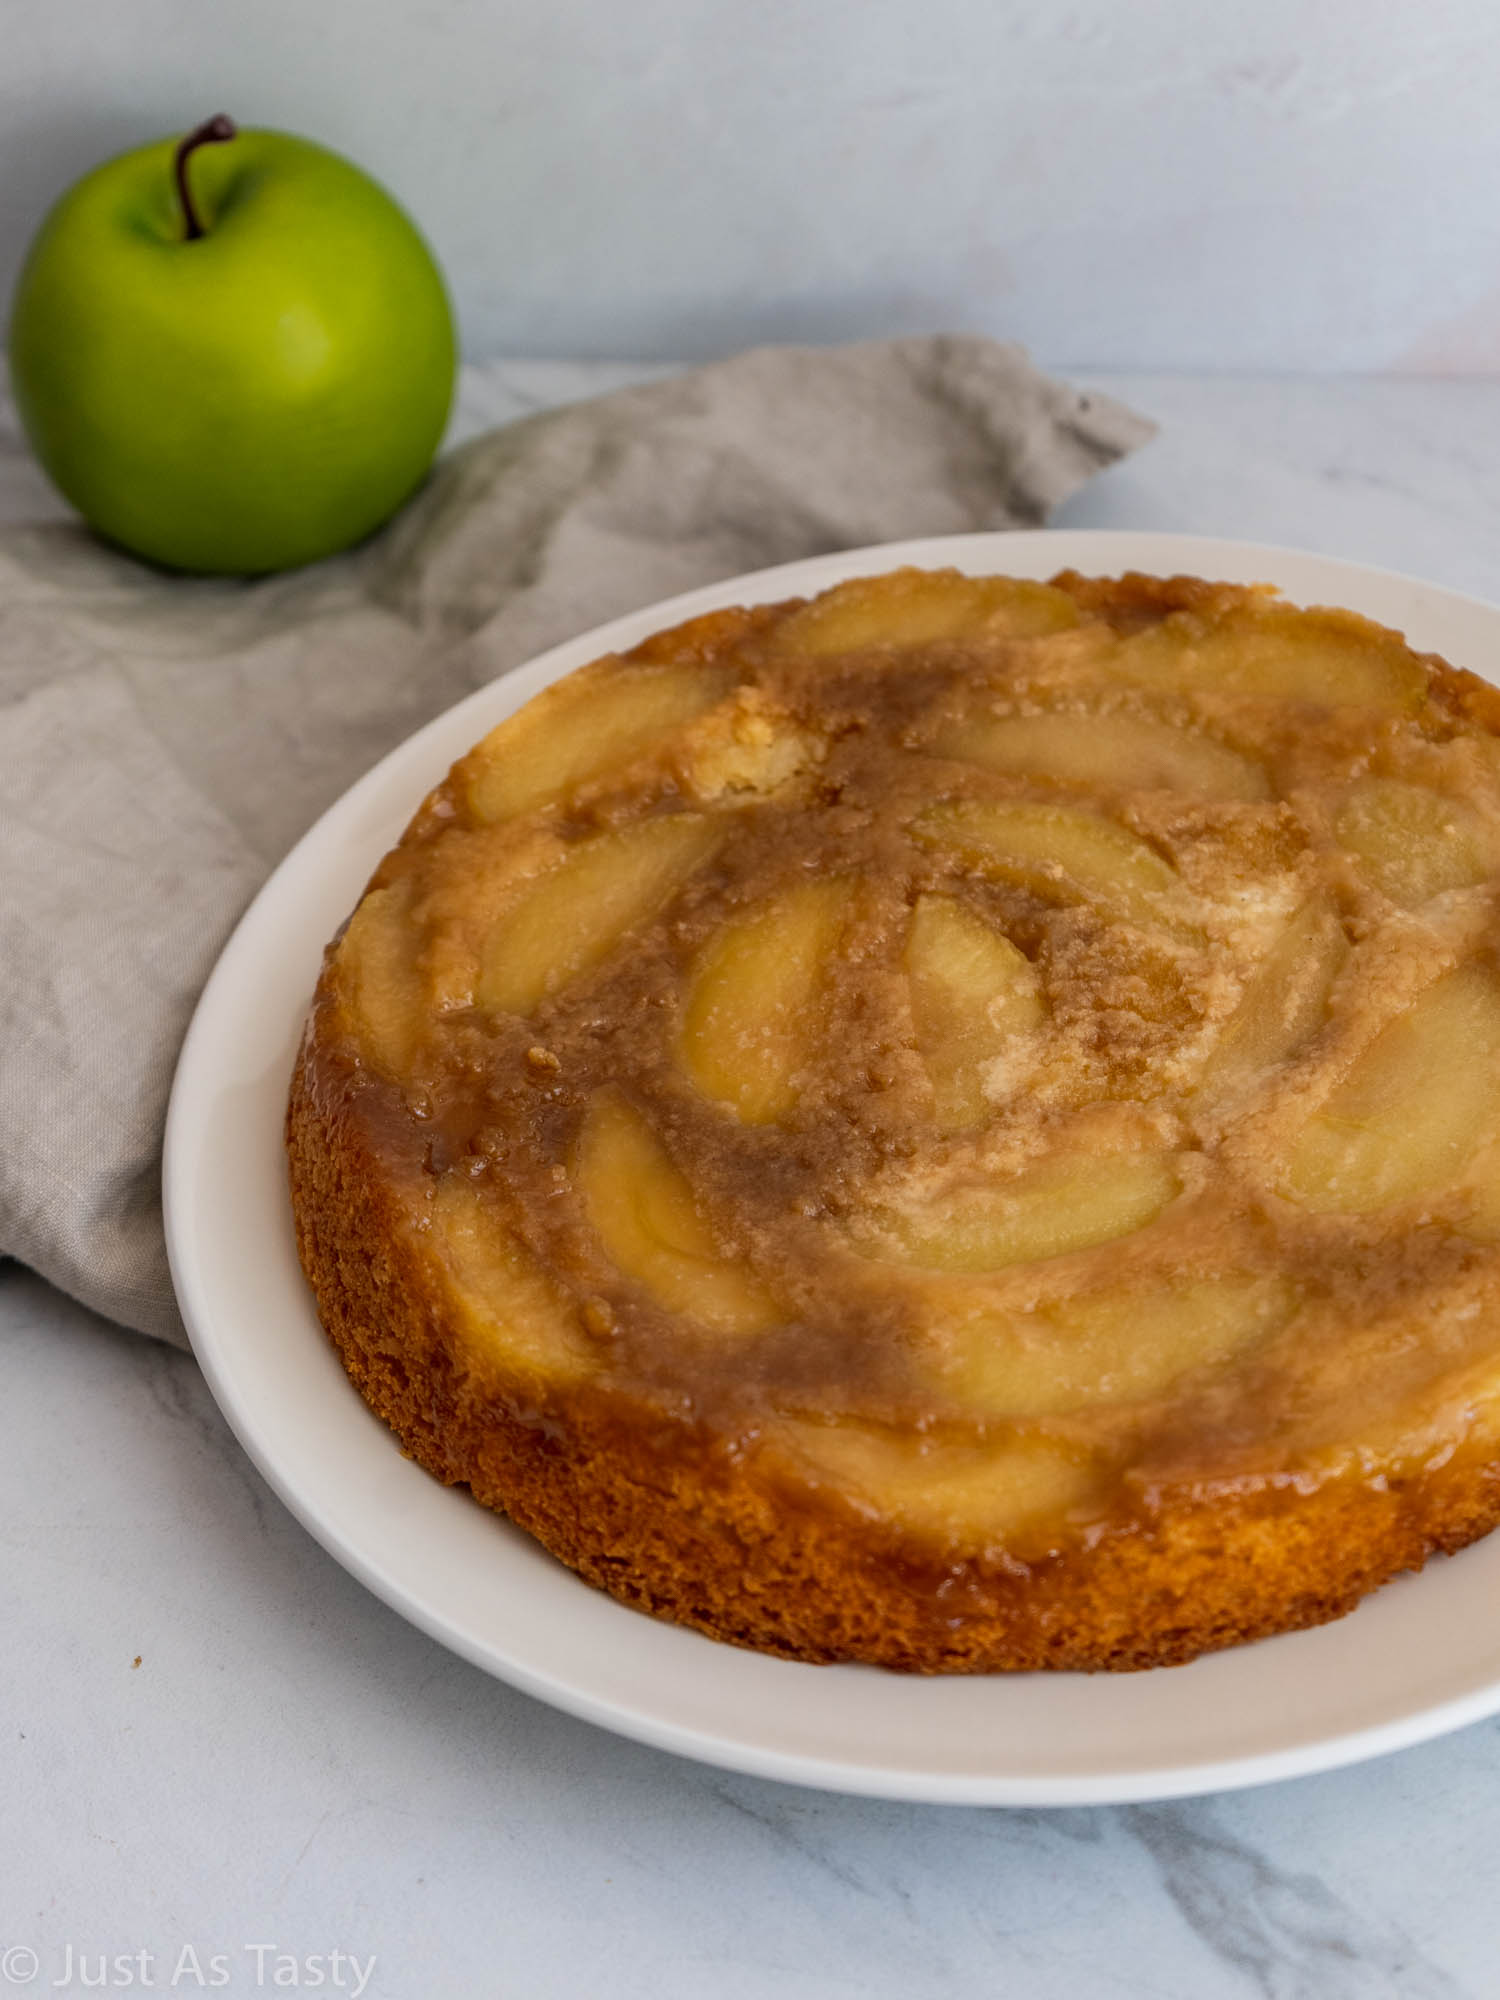 Gluten free single-layer apple cake on a white plate.